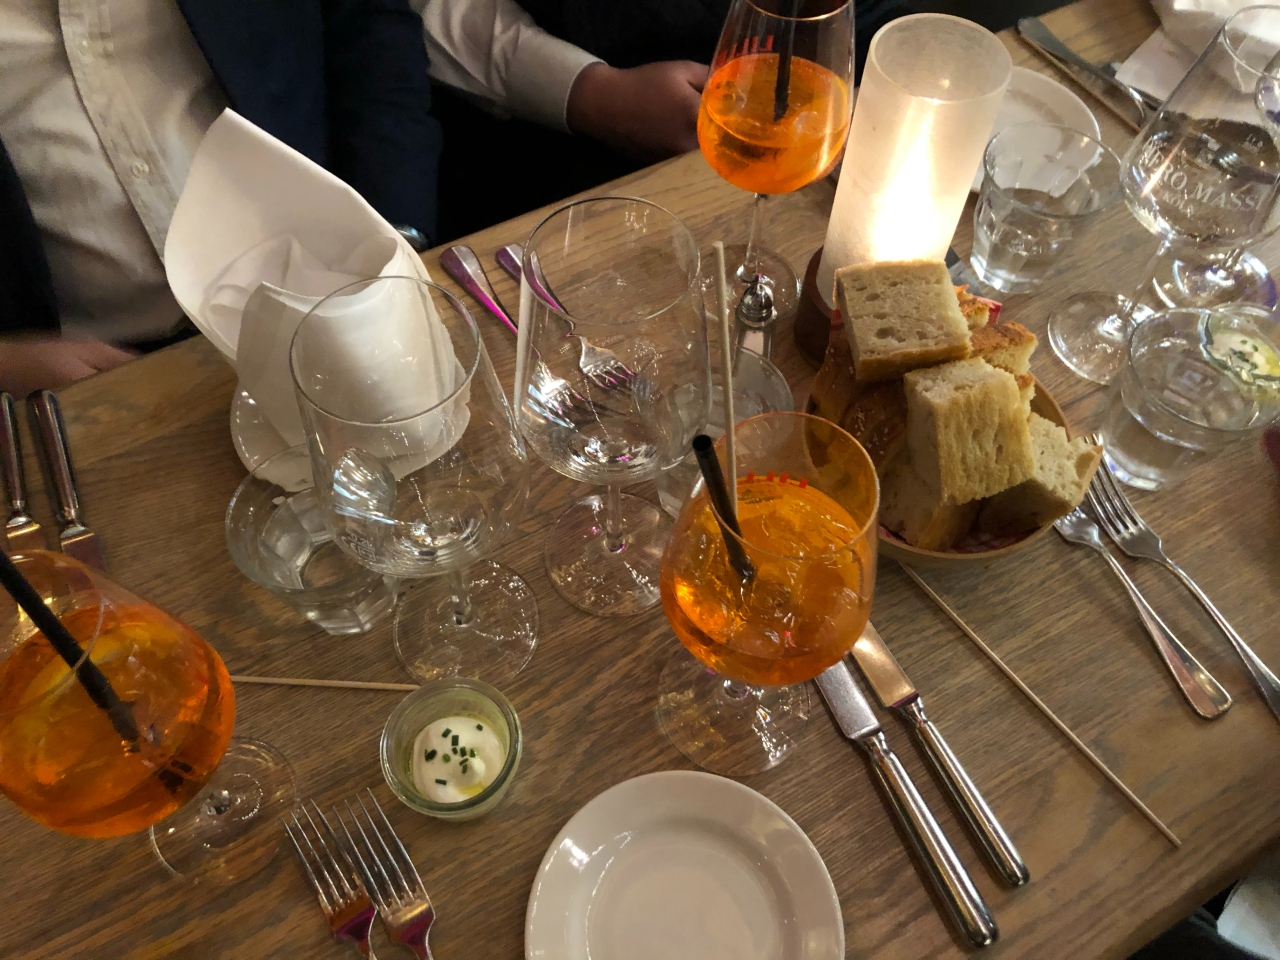 Aperol spritz and bread Via Bene